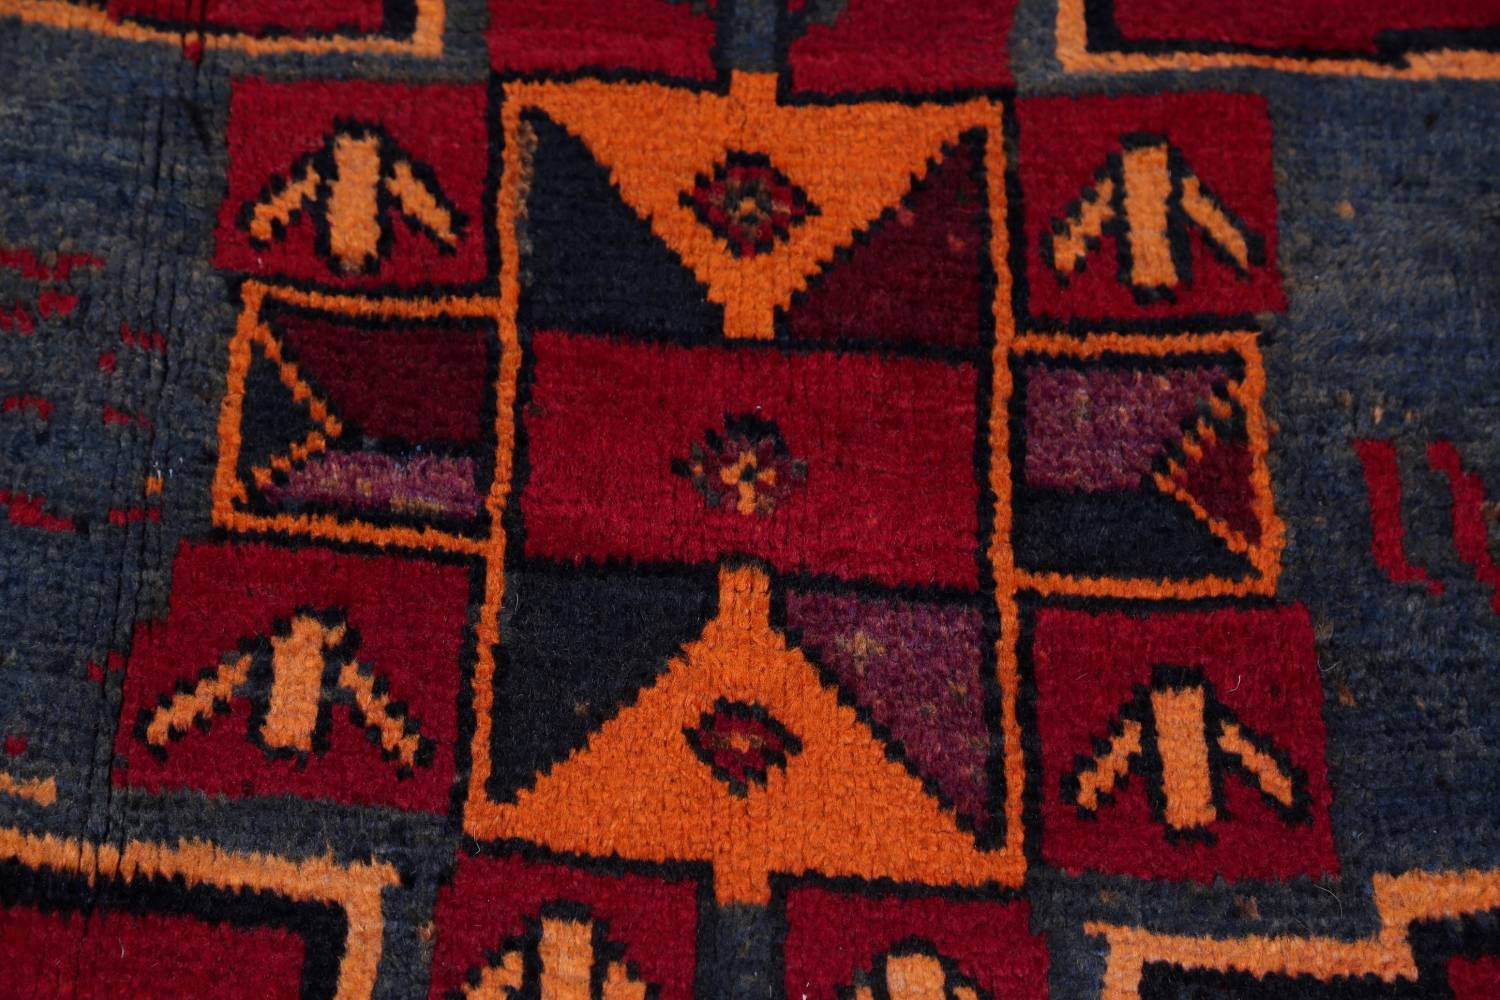 Antique Geometric Lori Persian Hand-Knotted 4x13 Wool Runner Rug image 7